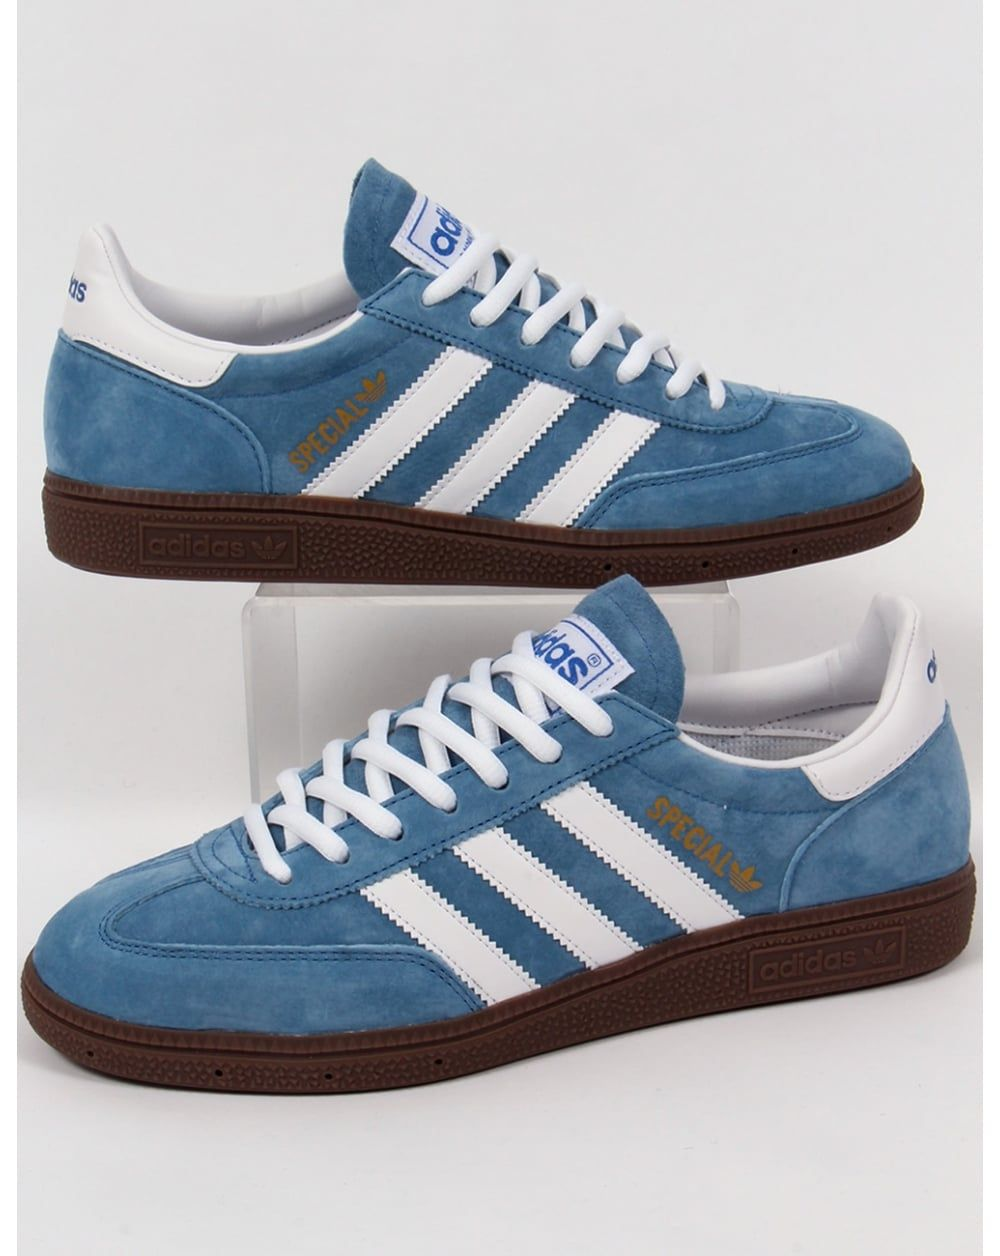 Adidas Handball Spezial Trainers Royal Bluewhite, originals